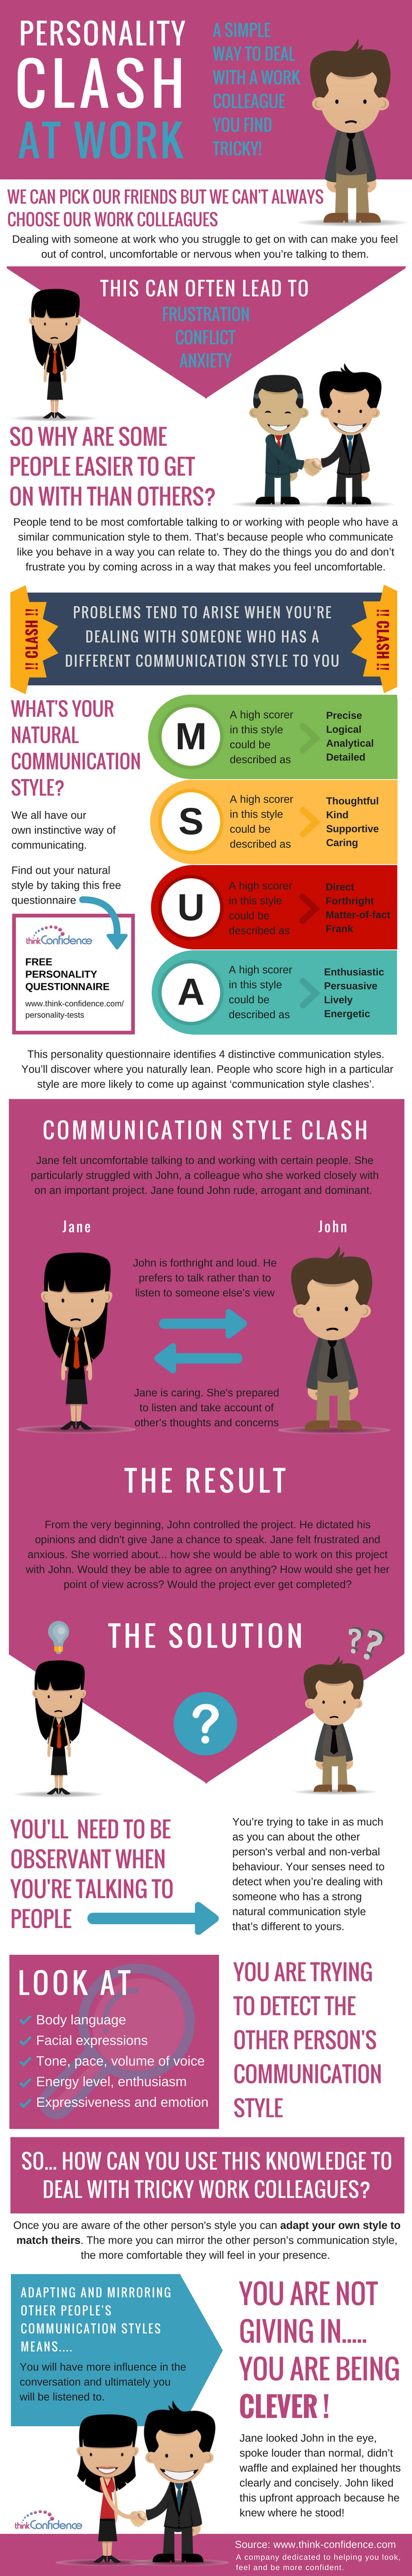 Personality Clash - How To Communicate With Confidence - Infographic